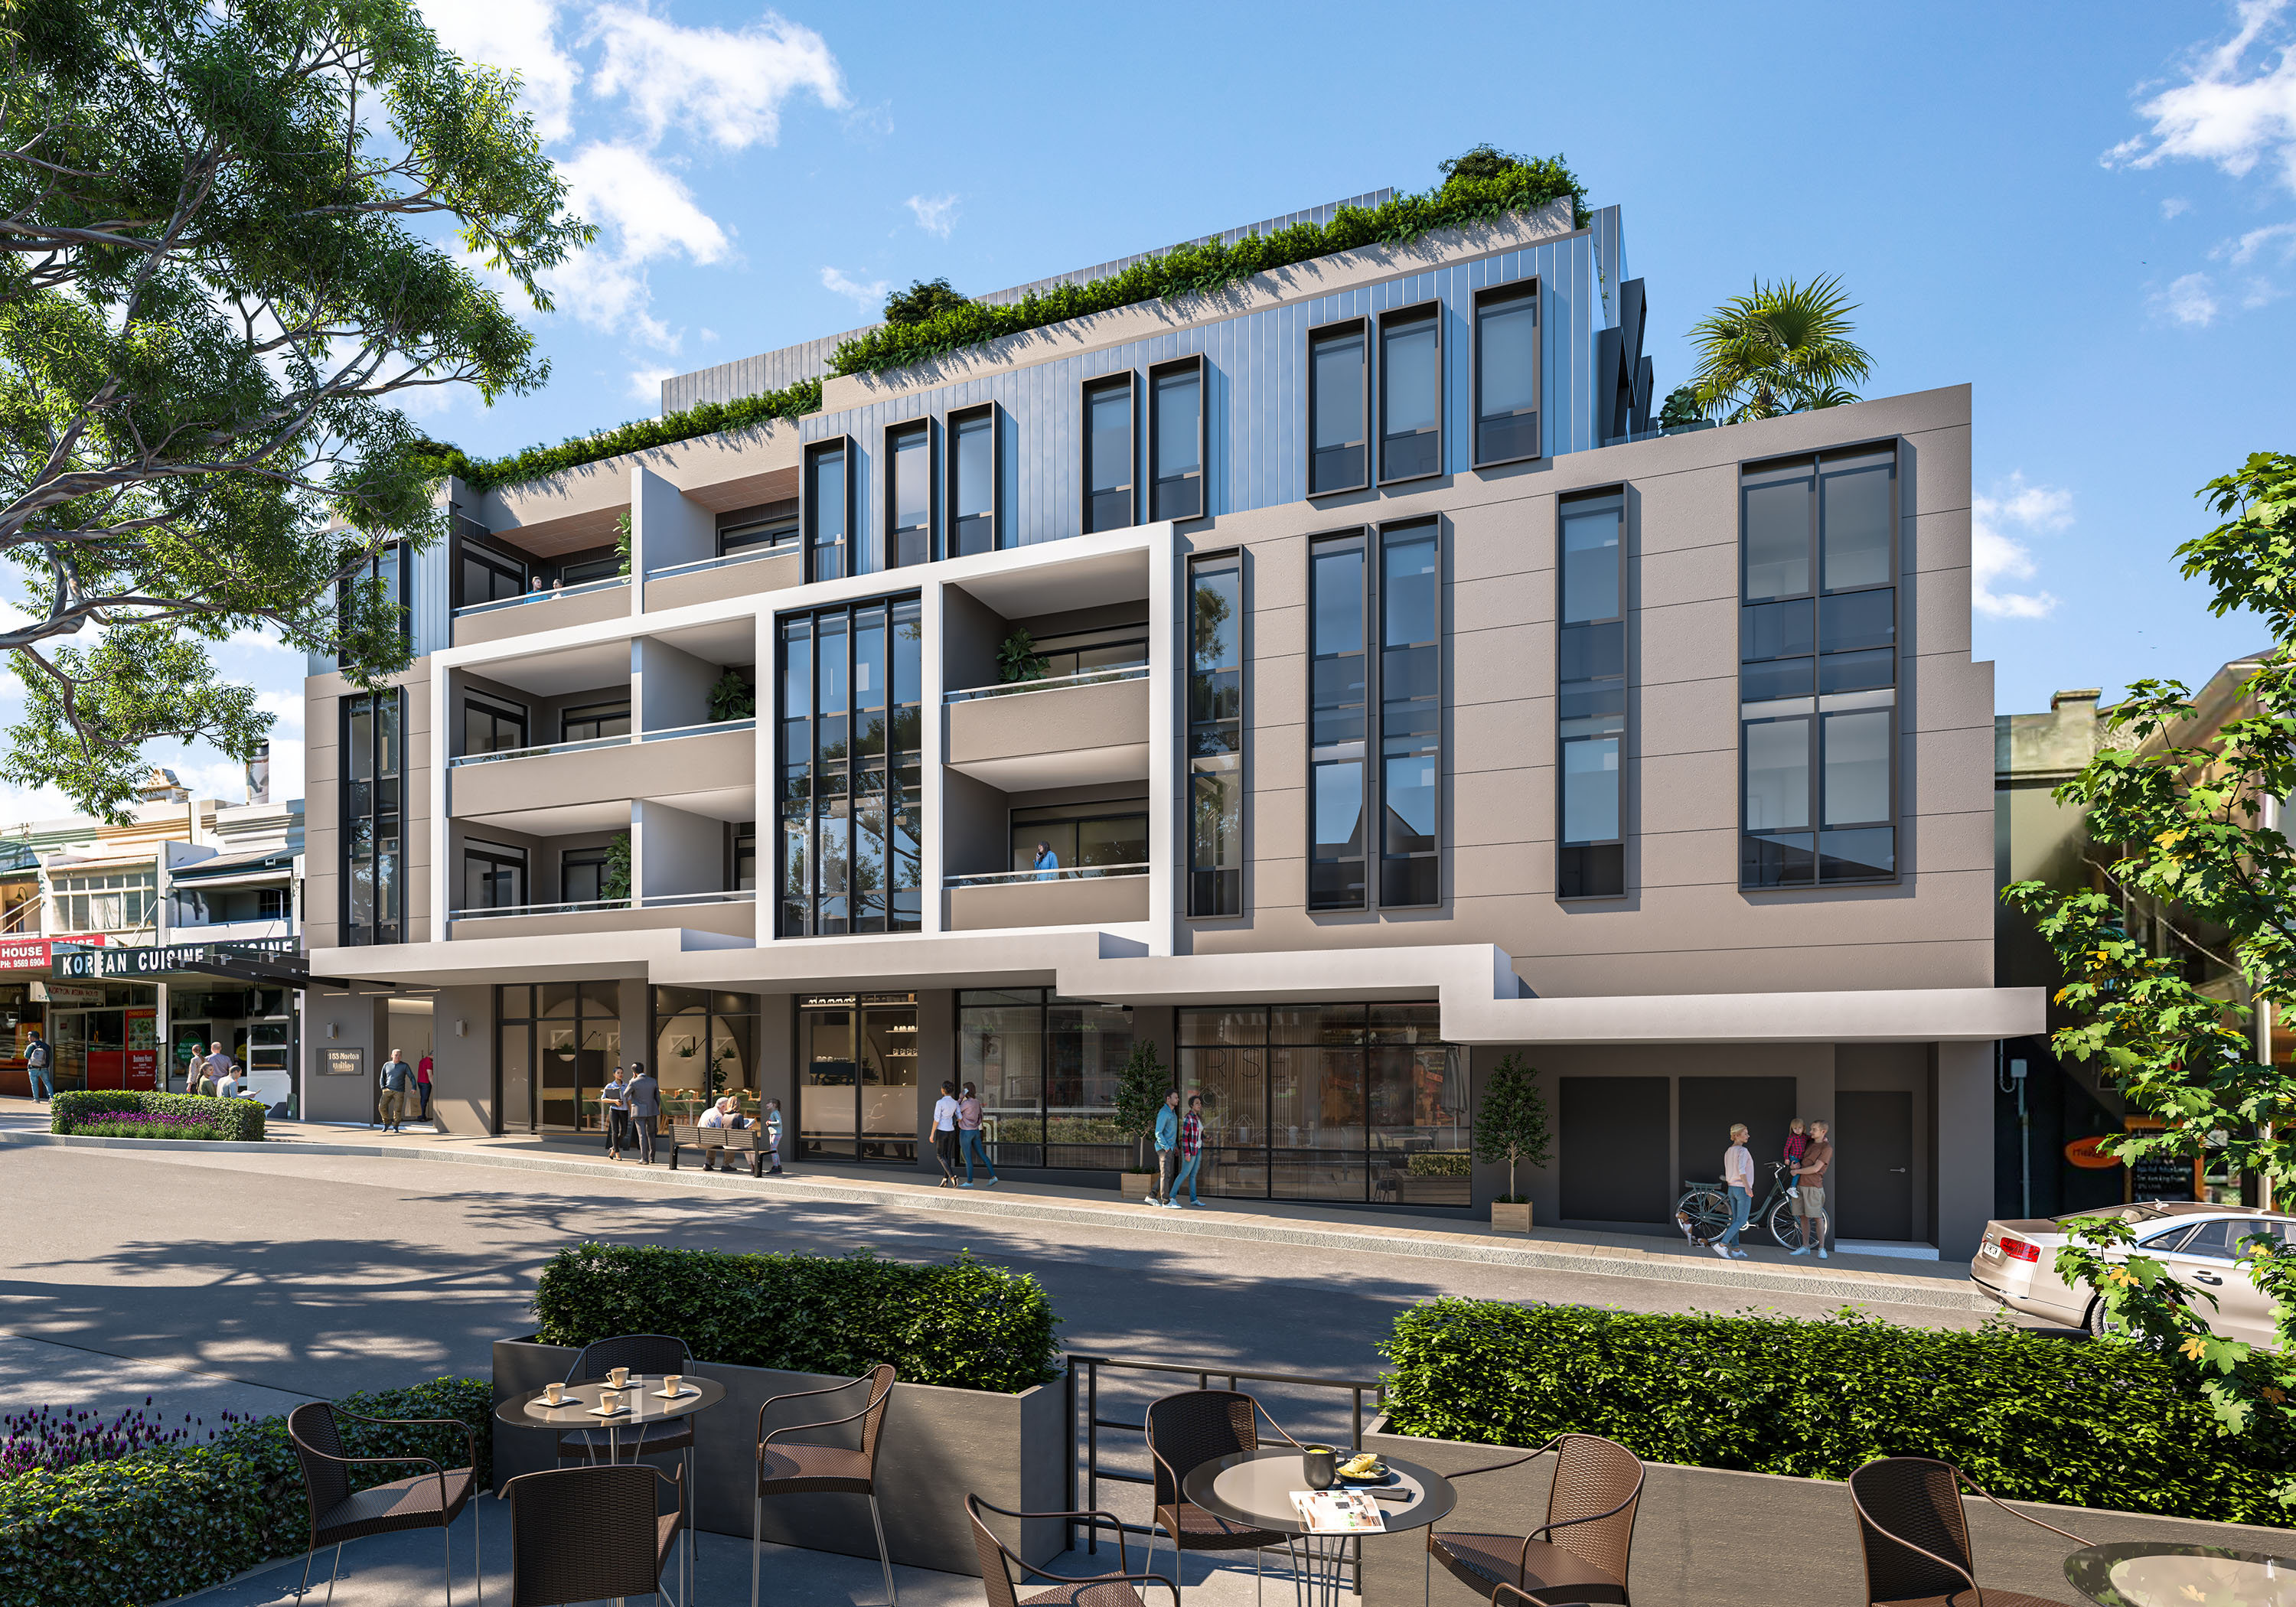 Uniting Norton Street - Mixed Use Multi-Residential Apartments